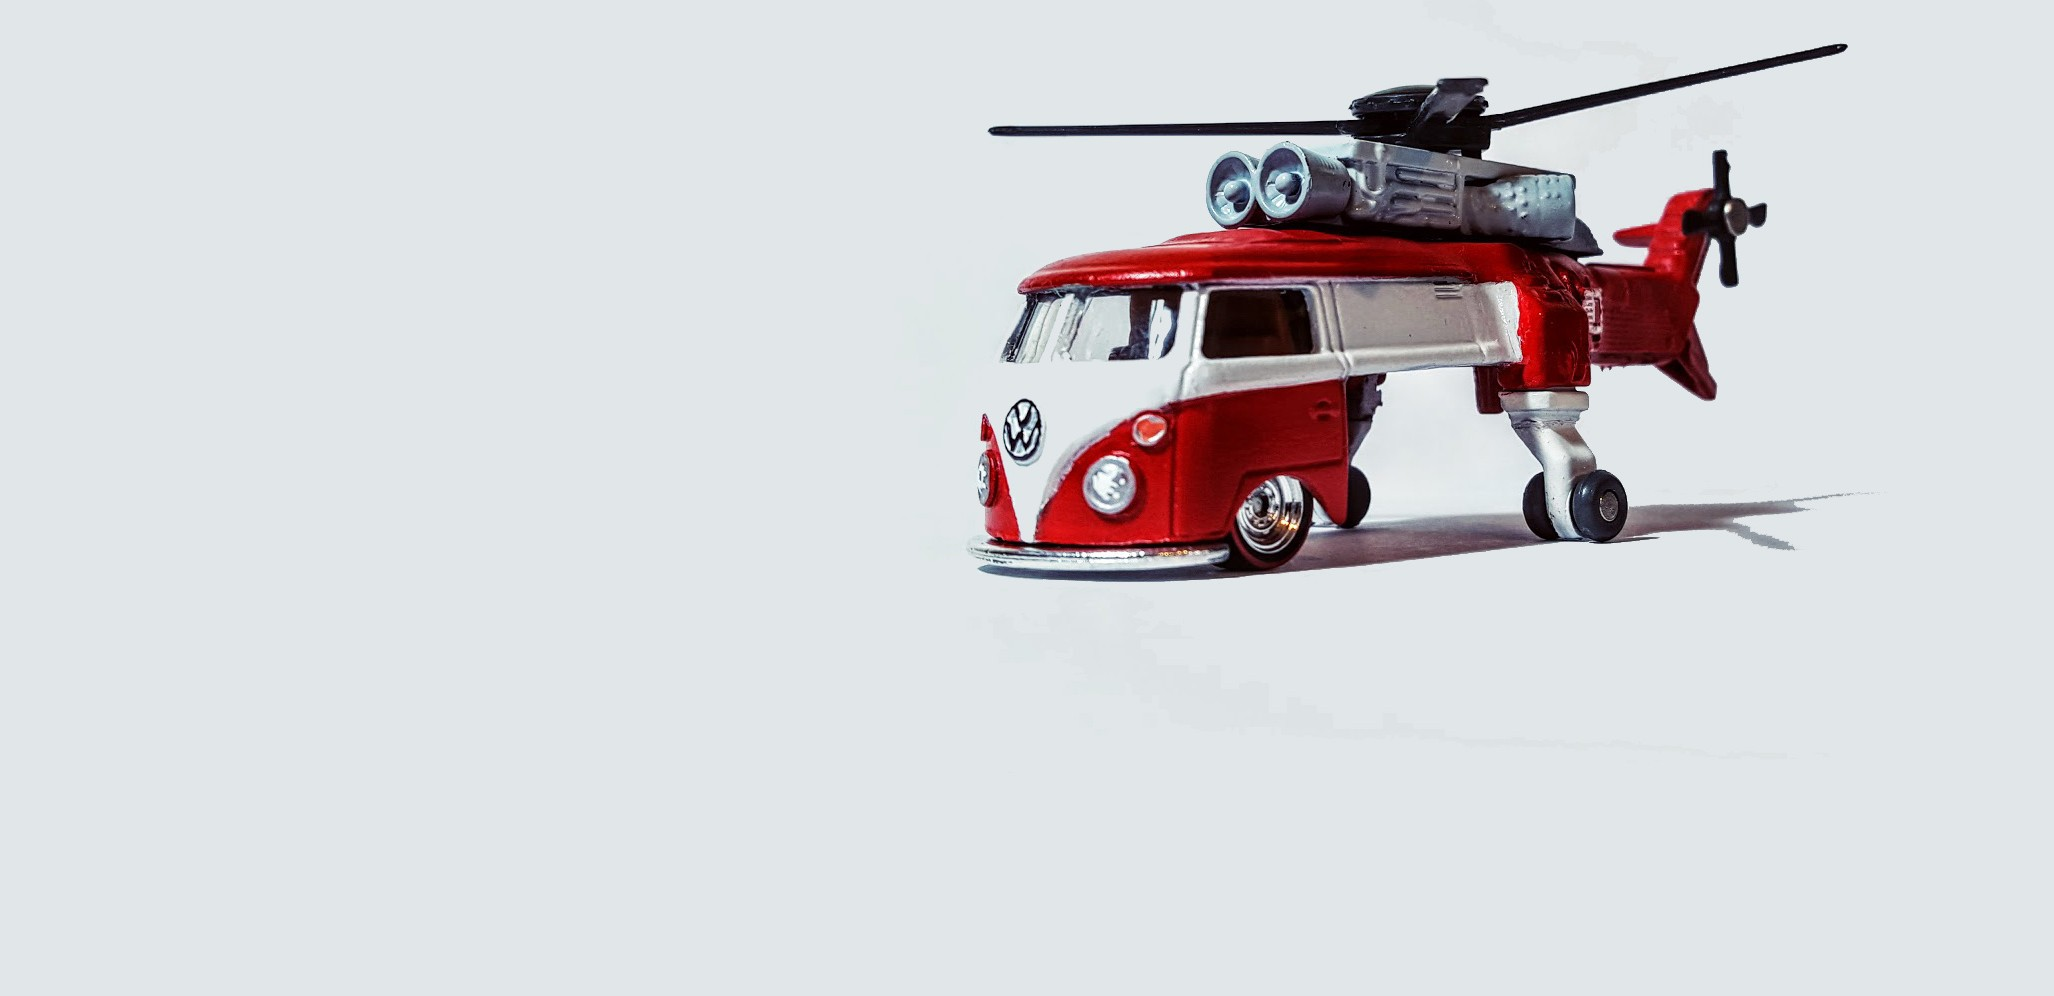 The Kombi Kopter